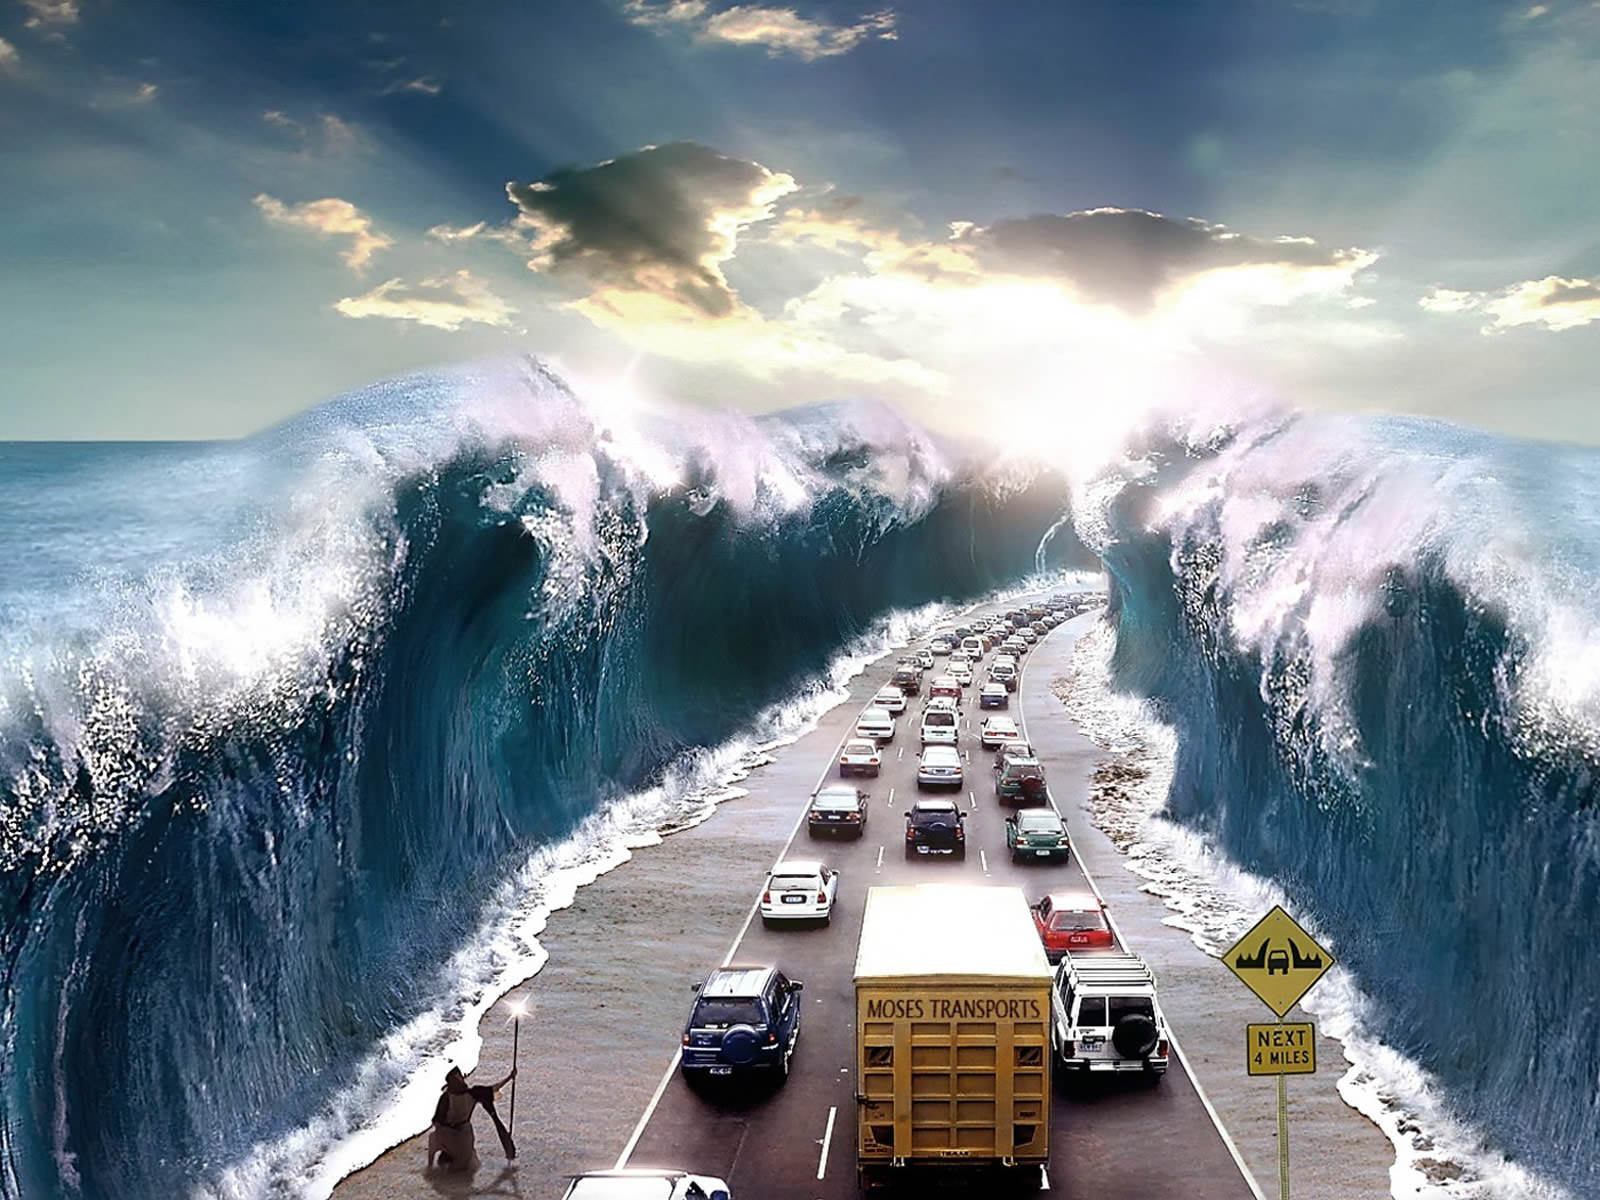 Living in the Surreal World: Absolutely Amazing Surreal Wallpapers